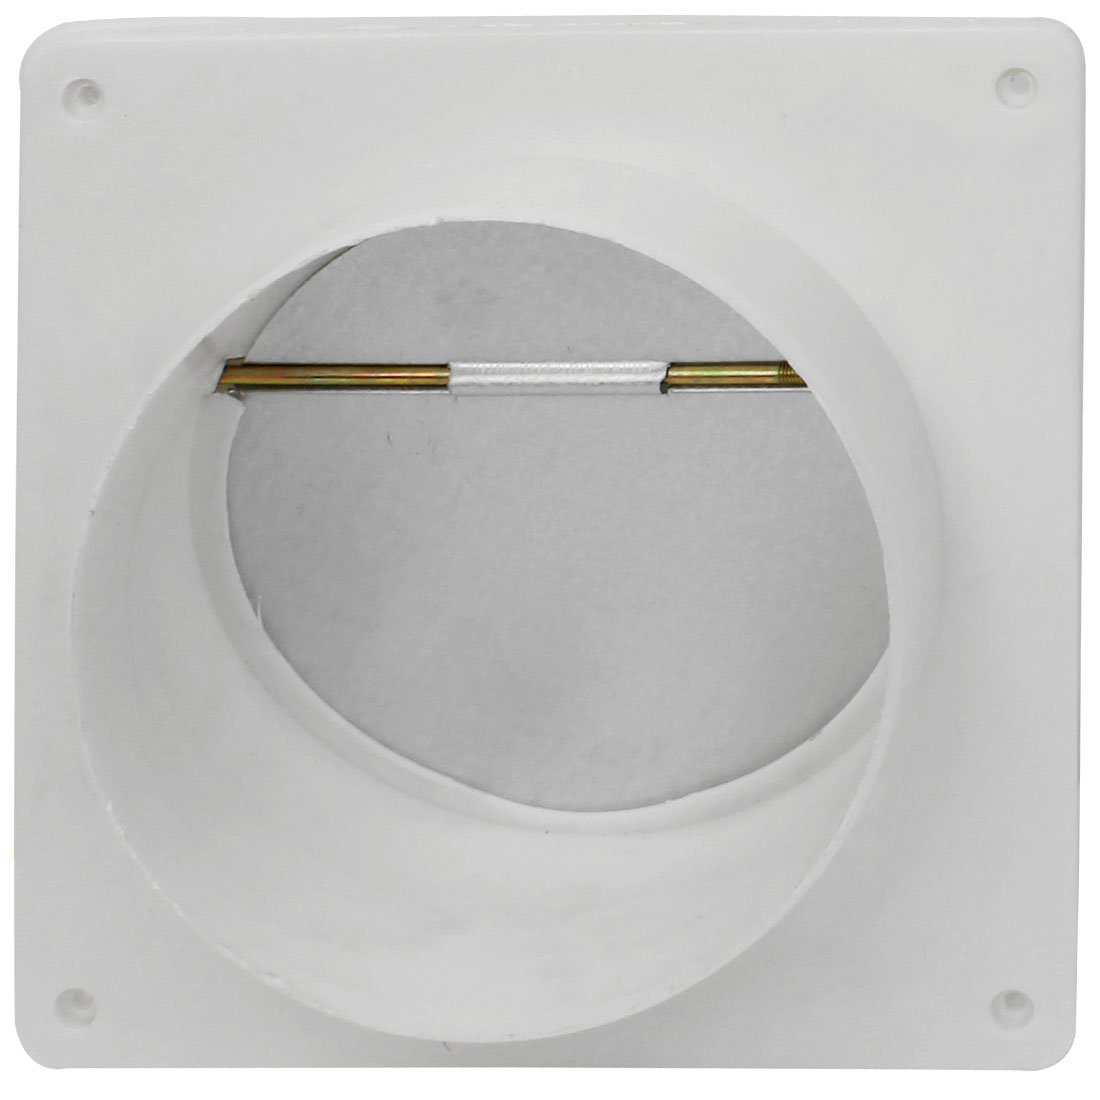 15cm Dia Round Mouth 20x20mm Square Plastic Frame One Way Exhaust Fan Air Outlet